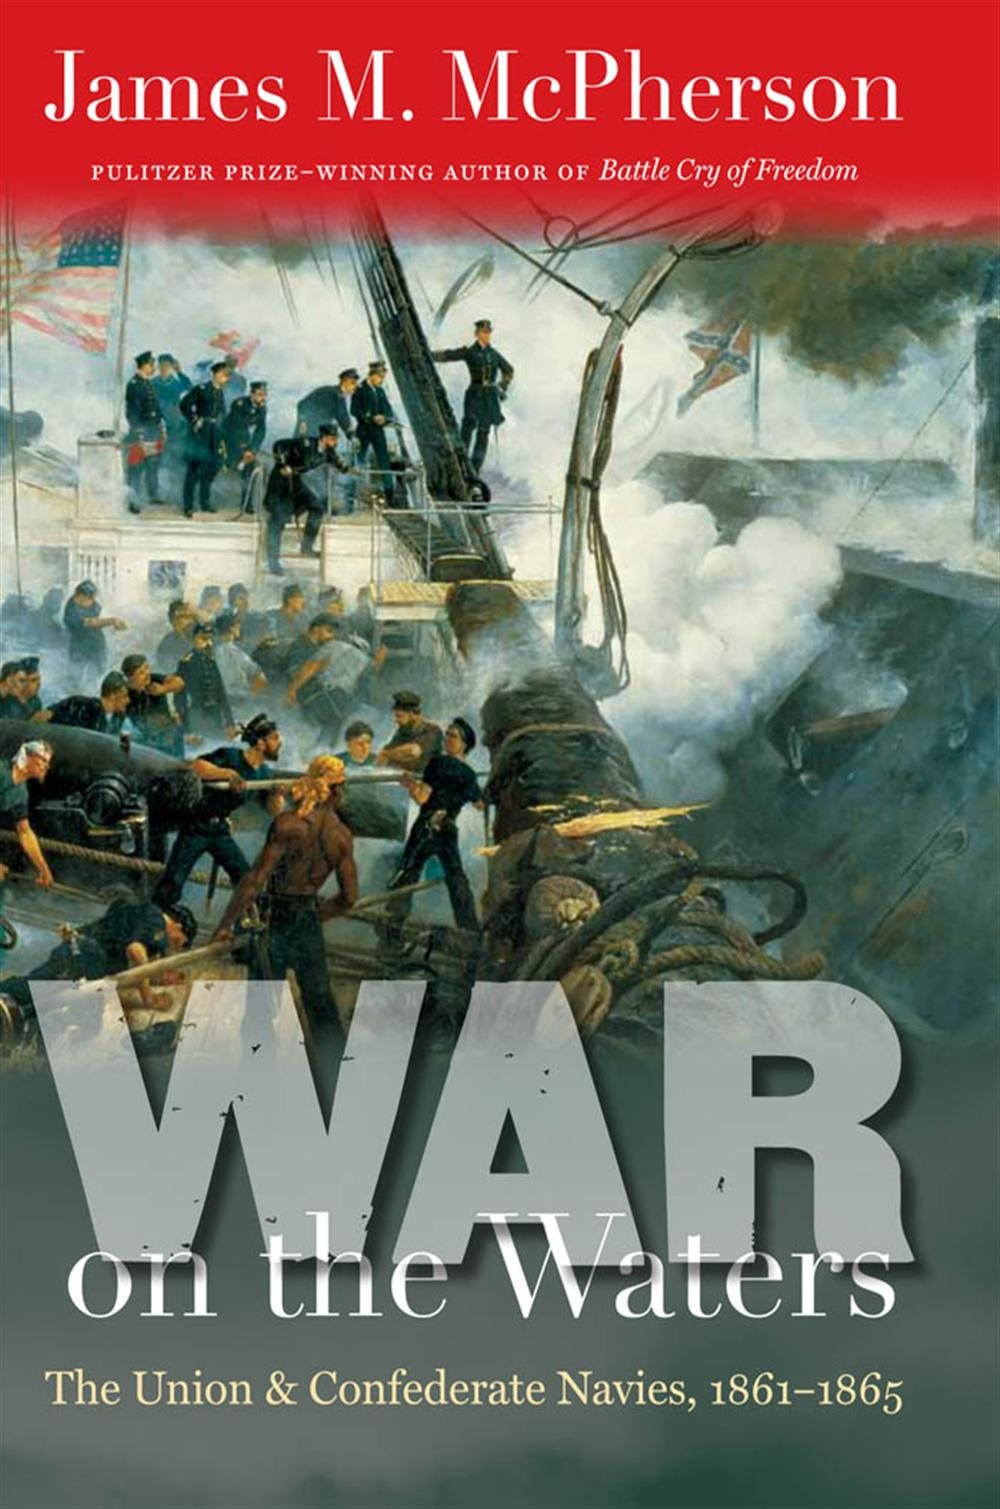 James McPherson, War on the Waters: The Union and Confederate Navies, 1861-1865-Click the link below for more information about this book